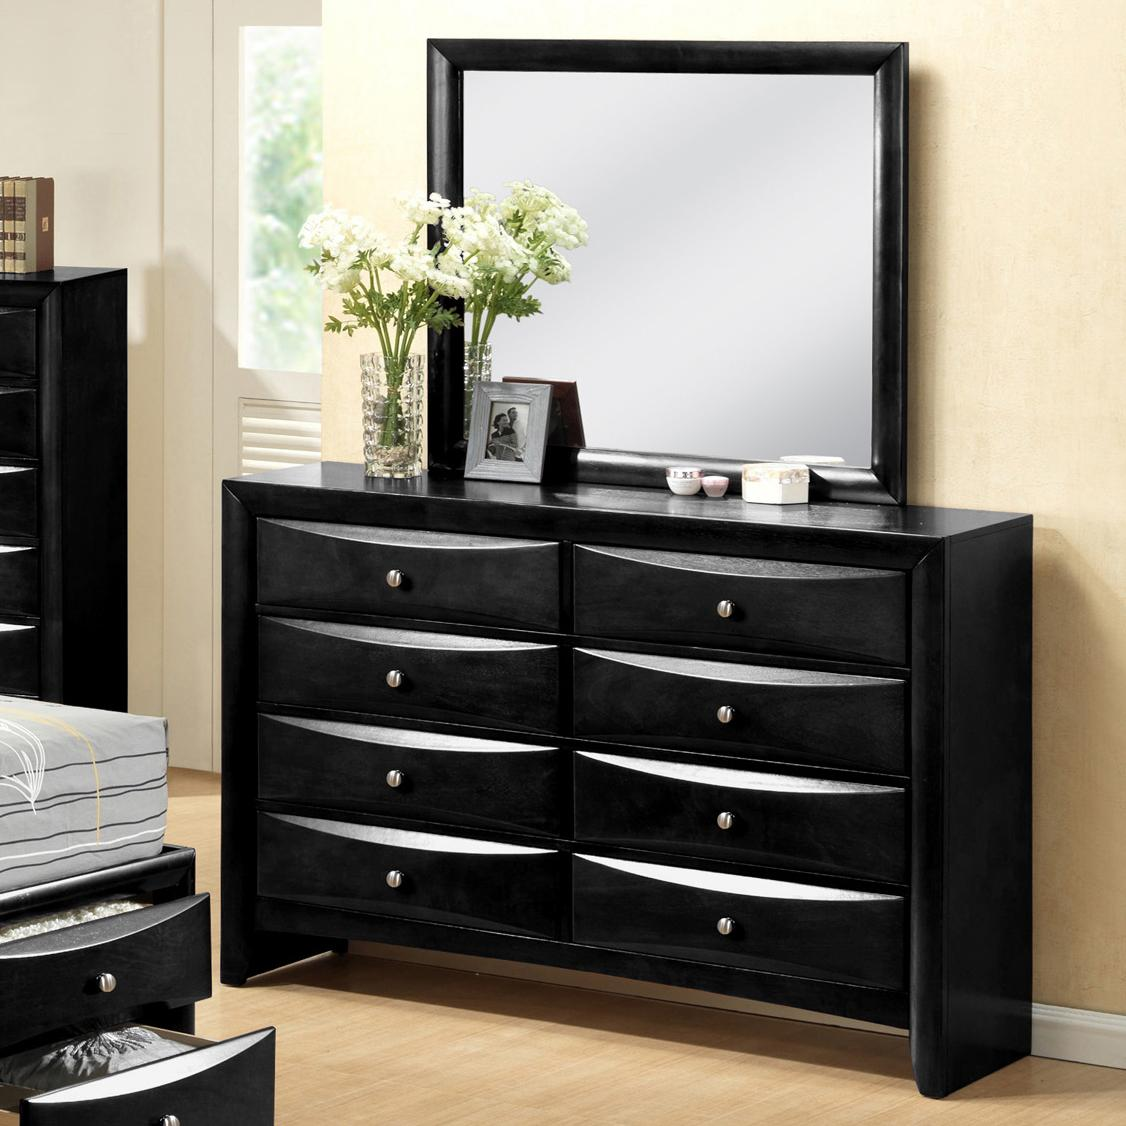 Crown mark emily contemporary 8 drawer dresser with mirror for Furniture markup